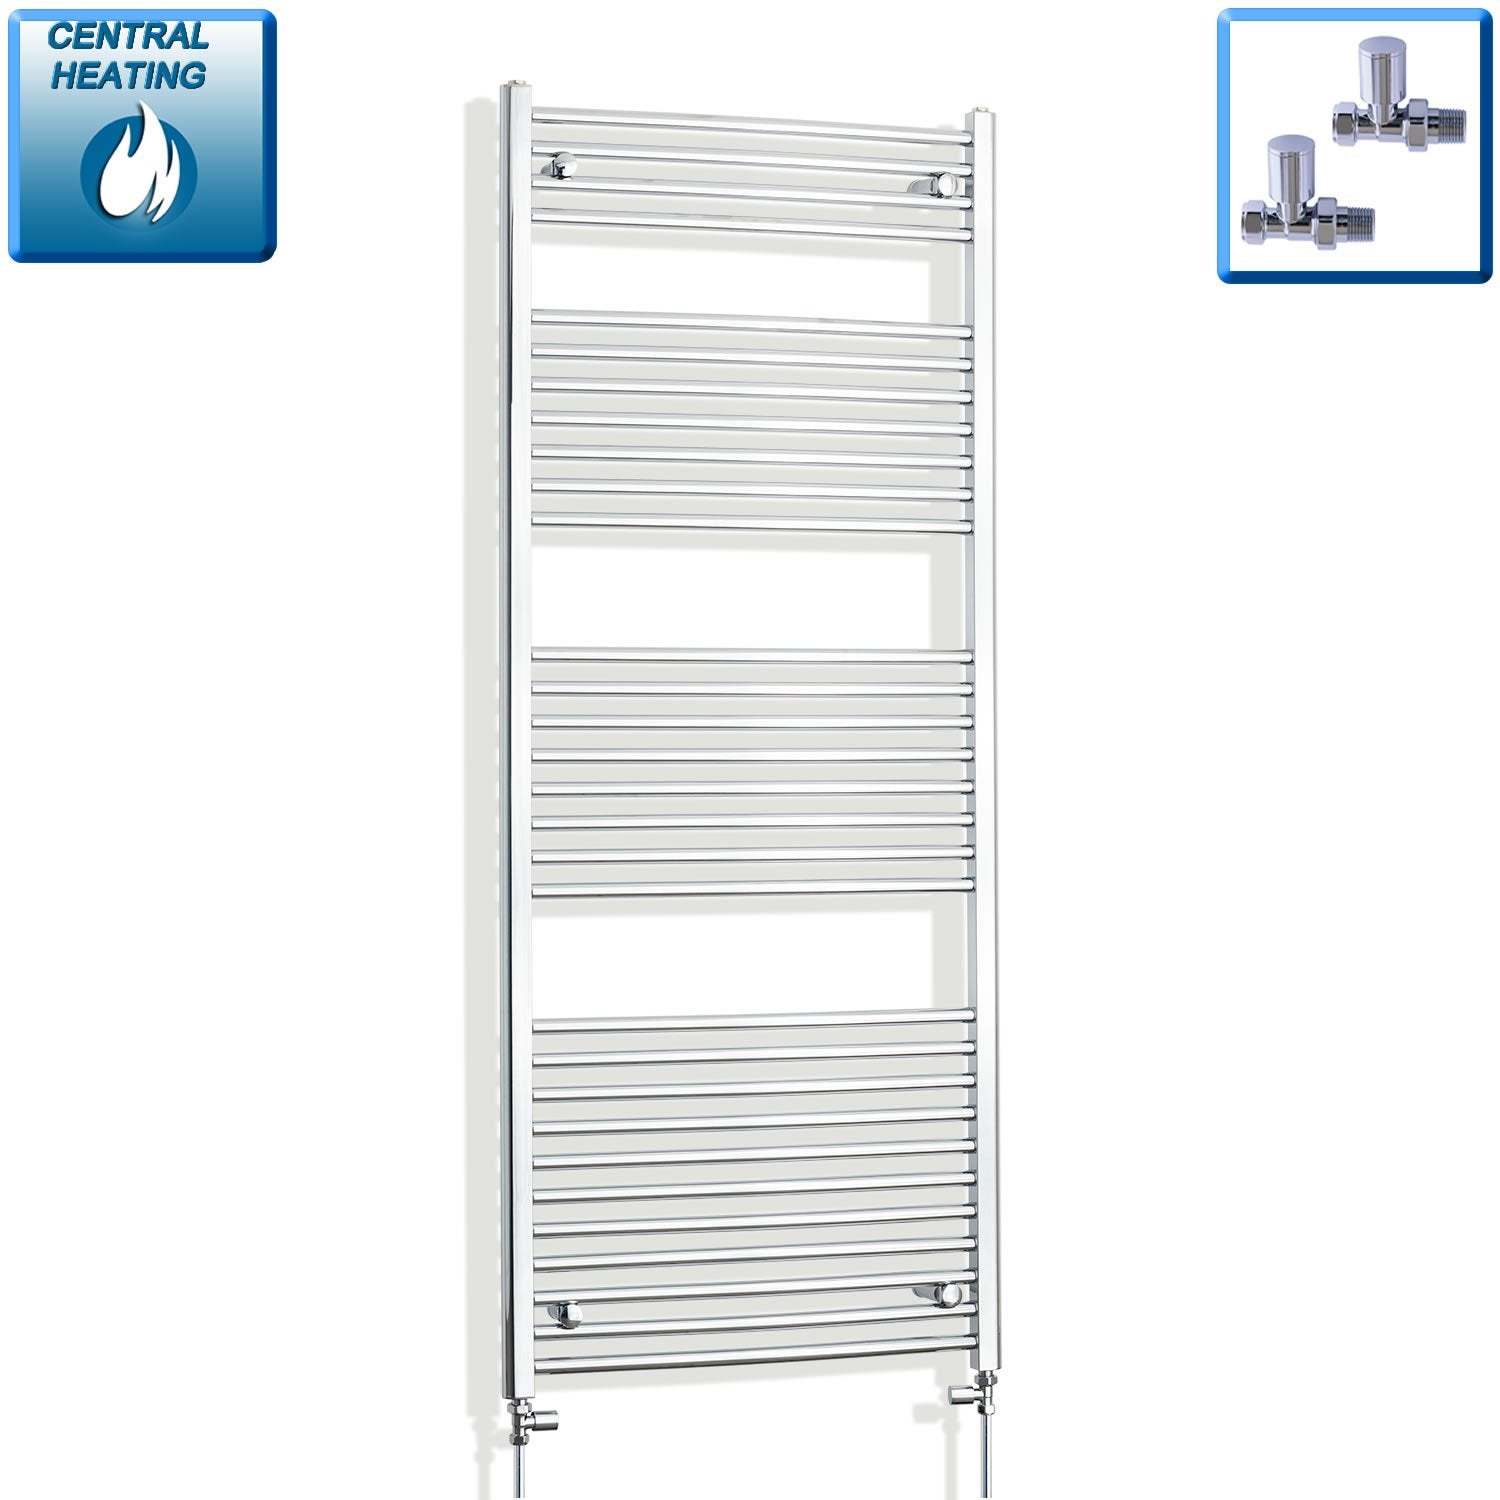 700mm Wide 1700mm High Flat Chrome Heated Towel Rail Radiator HTR,With Straight Valve